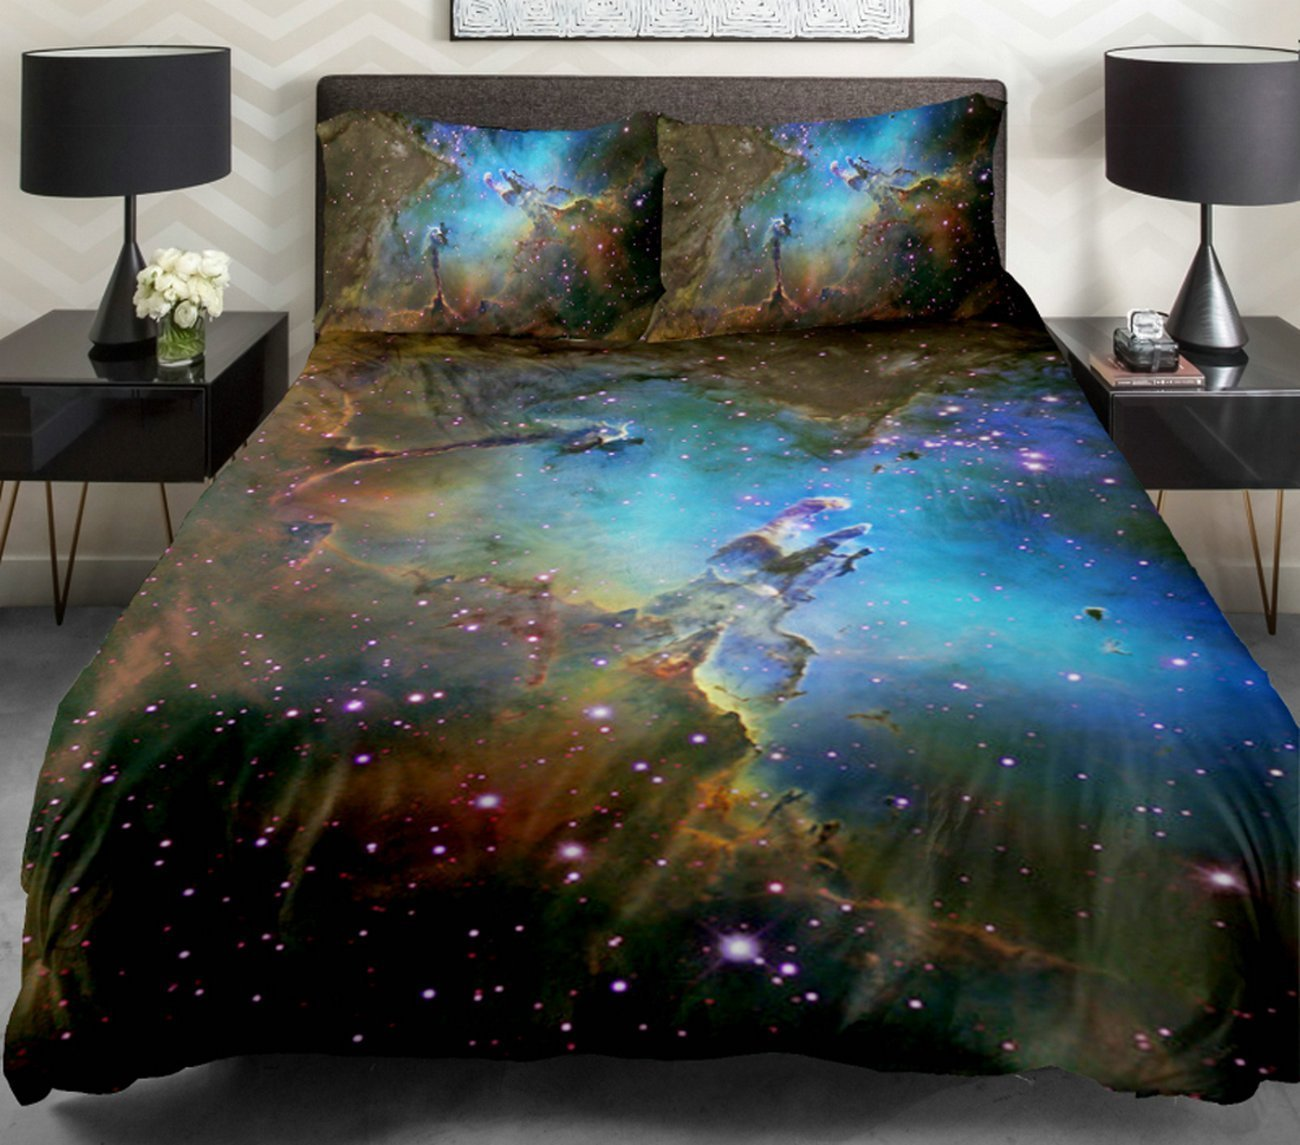 Galaxy bedding set for Outer space bedding